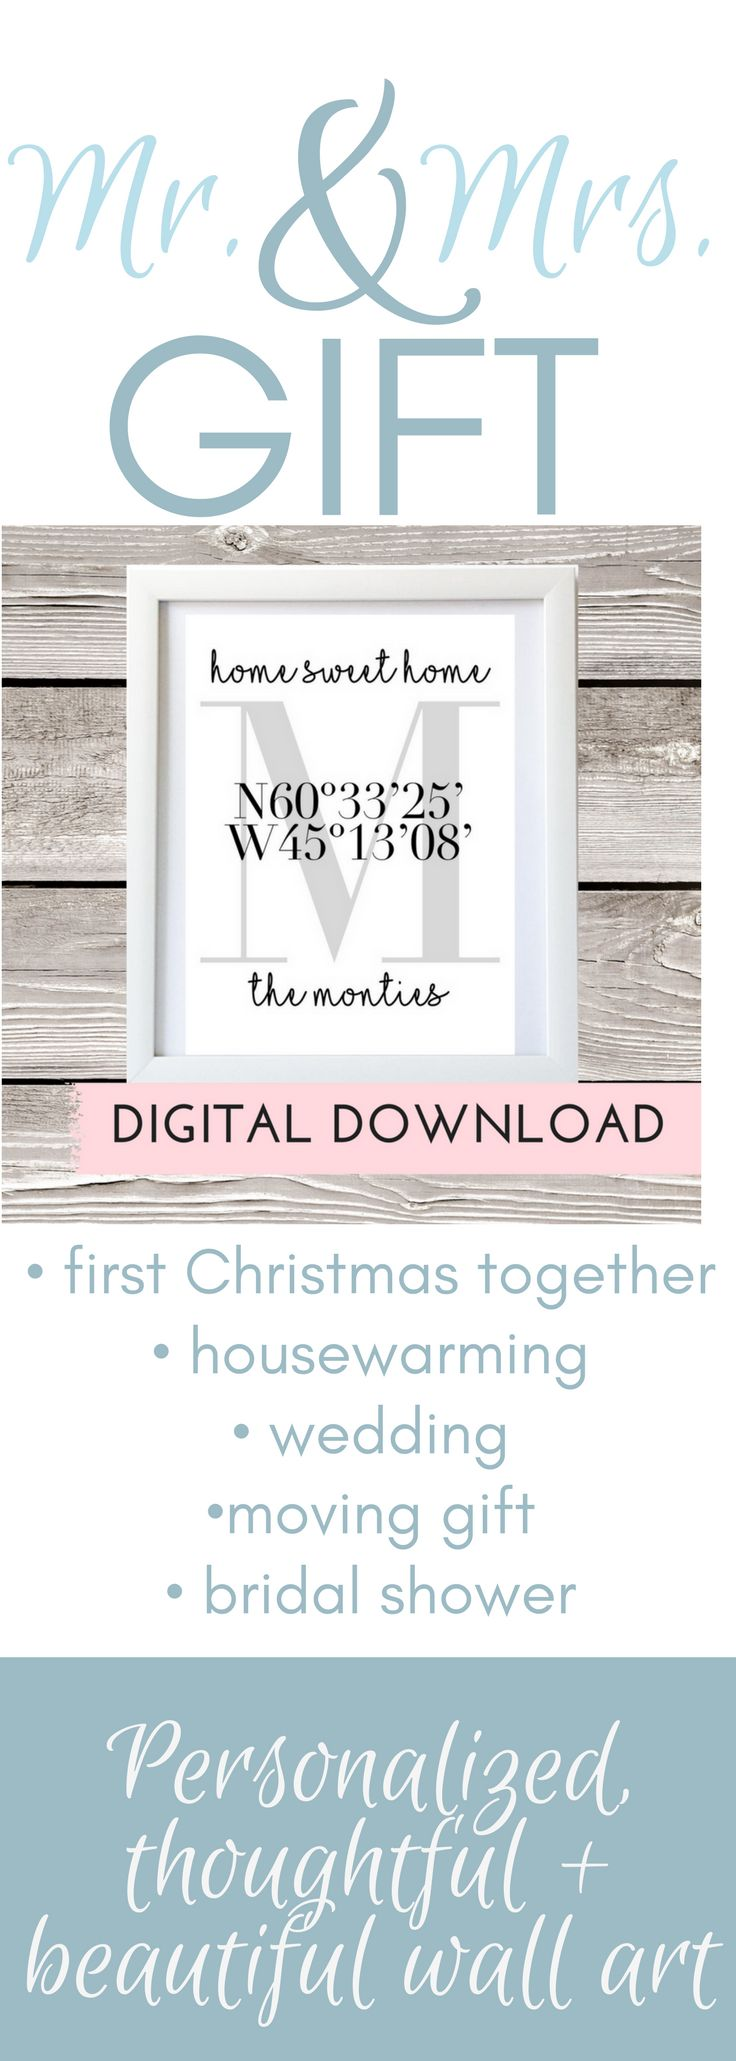 Home Sweet Home Welcome Printable makes decorating easy! Makes a great addition to your gallery wall, as a thoughtful housewarming gift or as a sweet first Mr. + Mrs. Christmas Gift. The print includes customization for your Family Name and Home Coordinates. Upon purchase you will promptly receive the 8x10 and 5x7 JPEG files. You are able to conveniently print these right from home, or sent to a print lab.